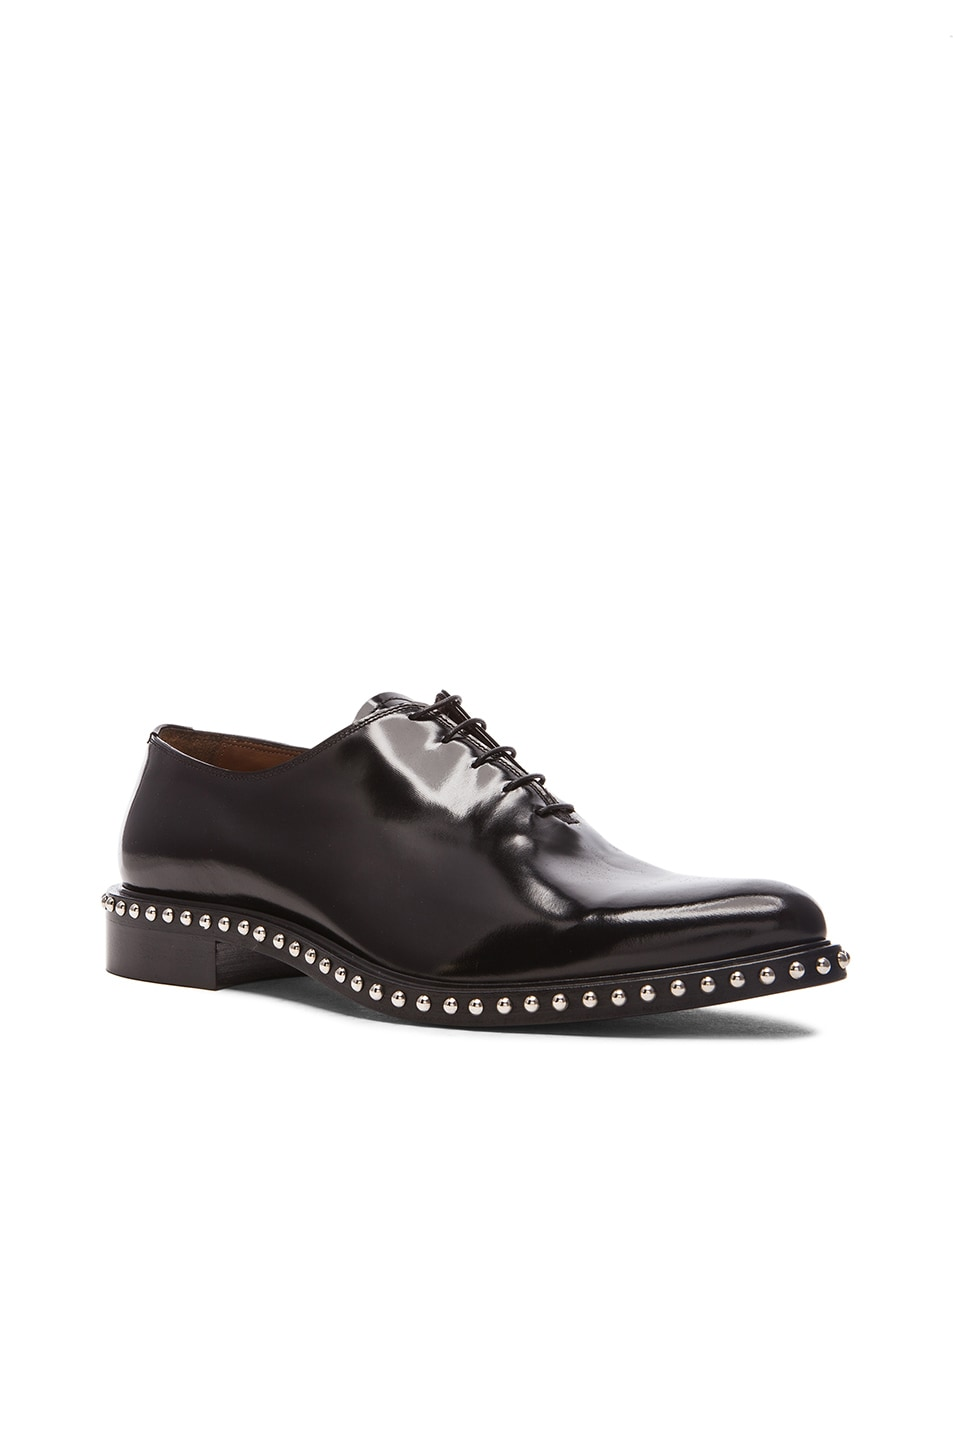 Image 1 of Givenchy Richel Studded Leather Dress Shoes in Black 1c10a73ddaef